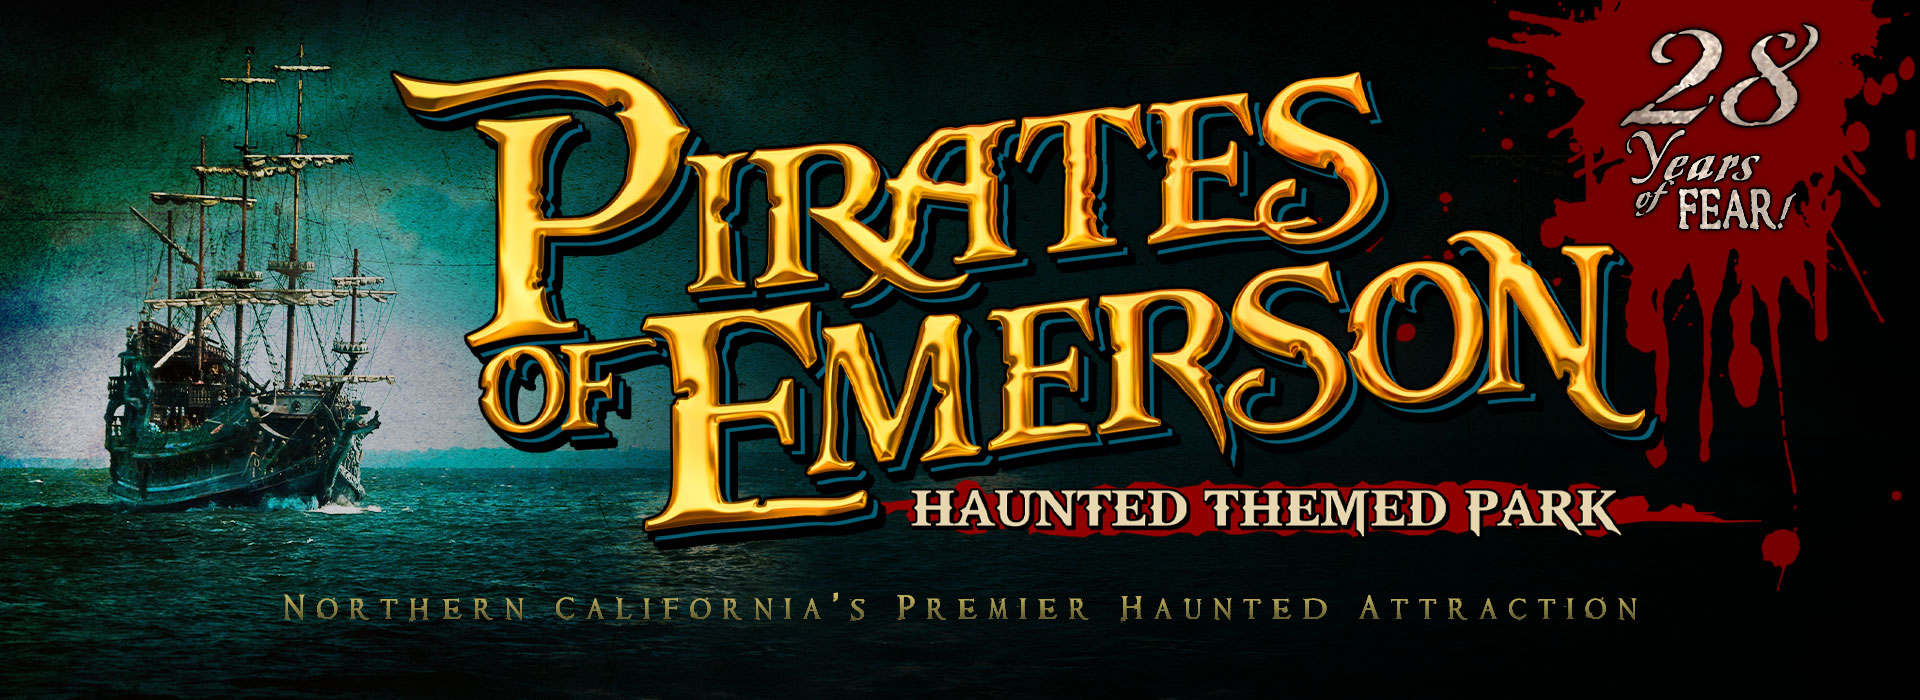 Pirates of Emerson Haunted Themed Park – Northern California's